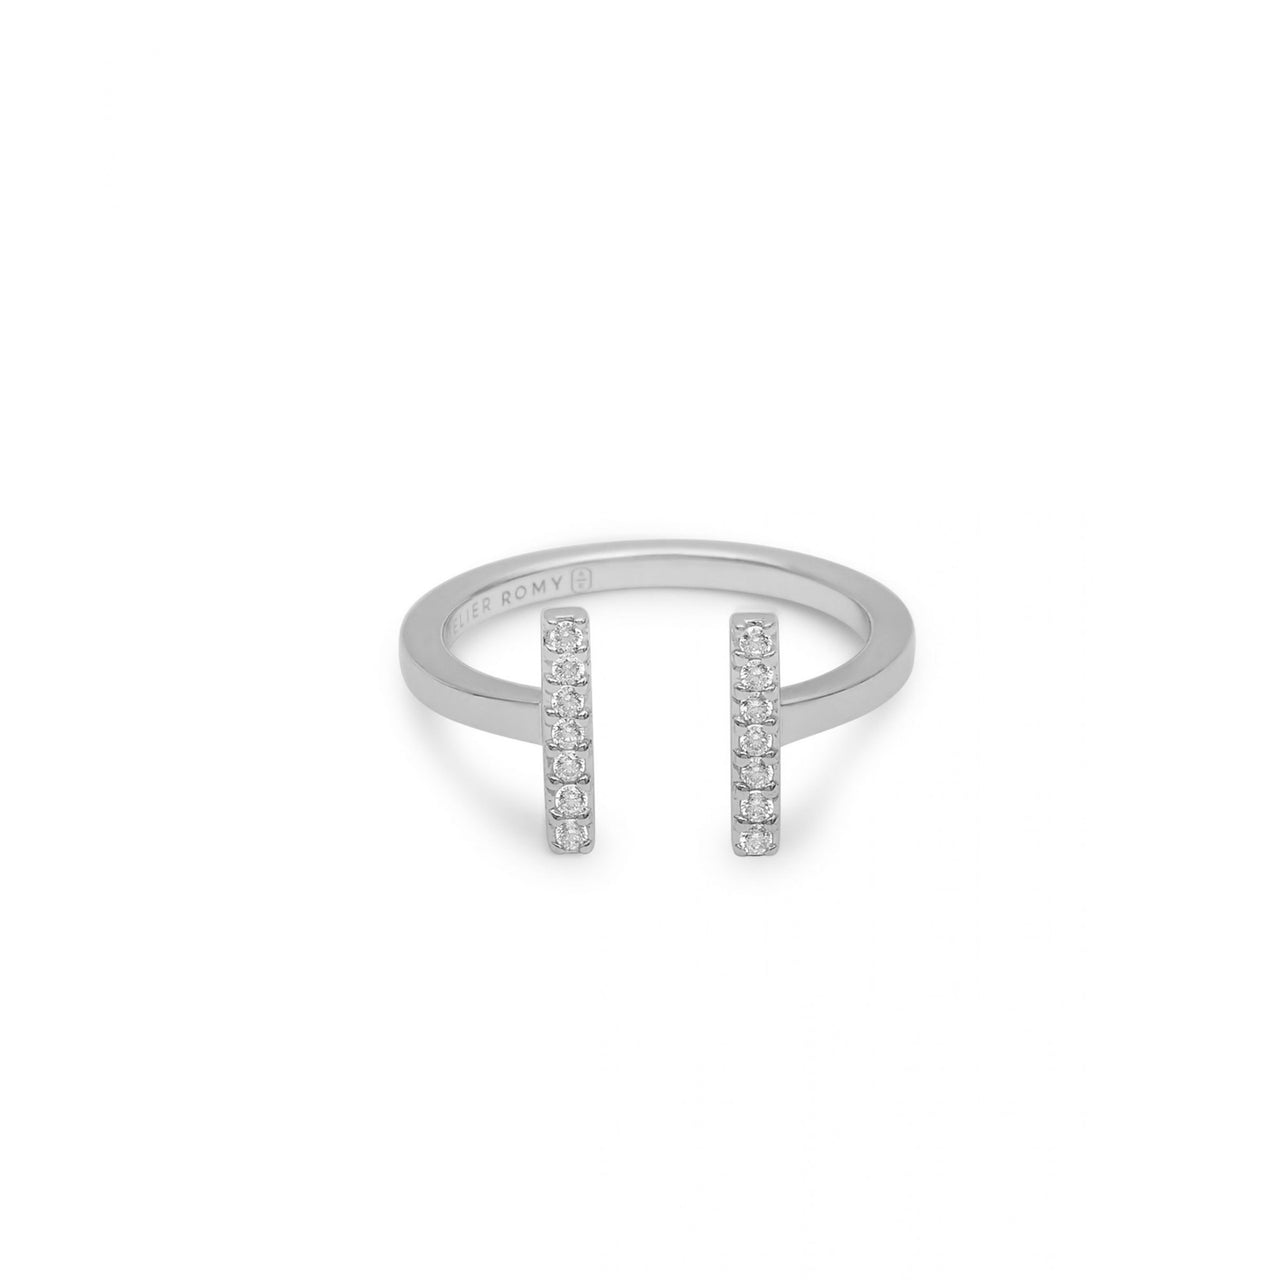 Eternity Line Ring Silver with White Pave